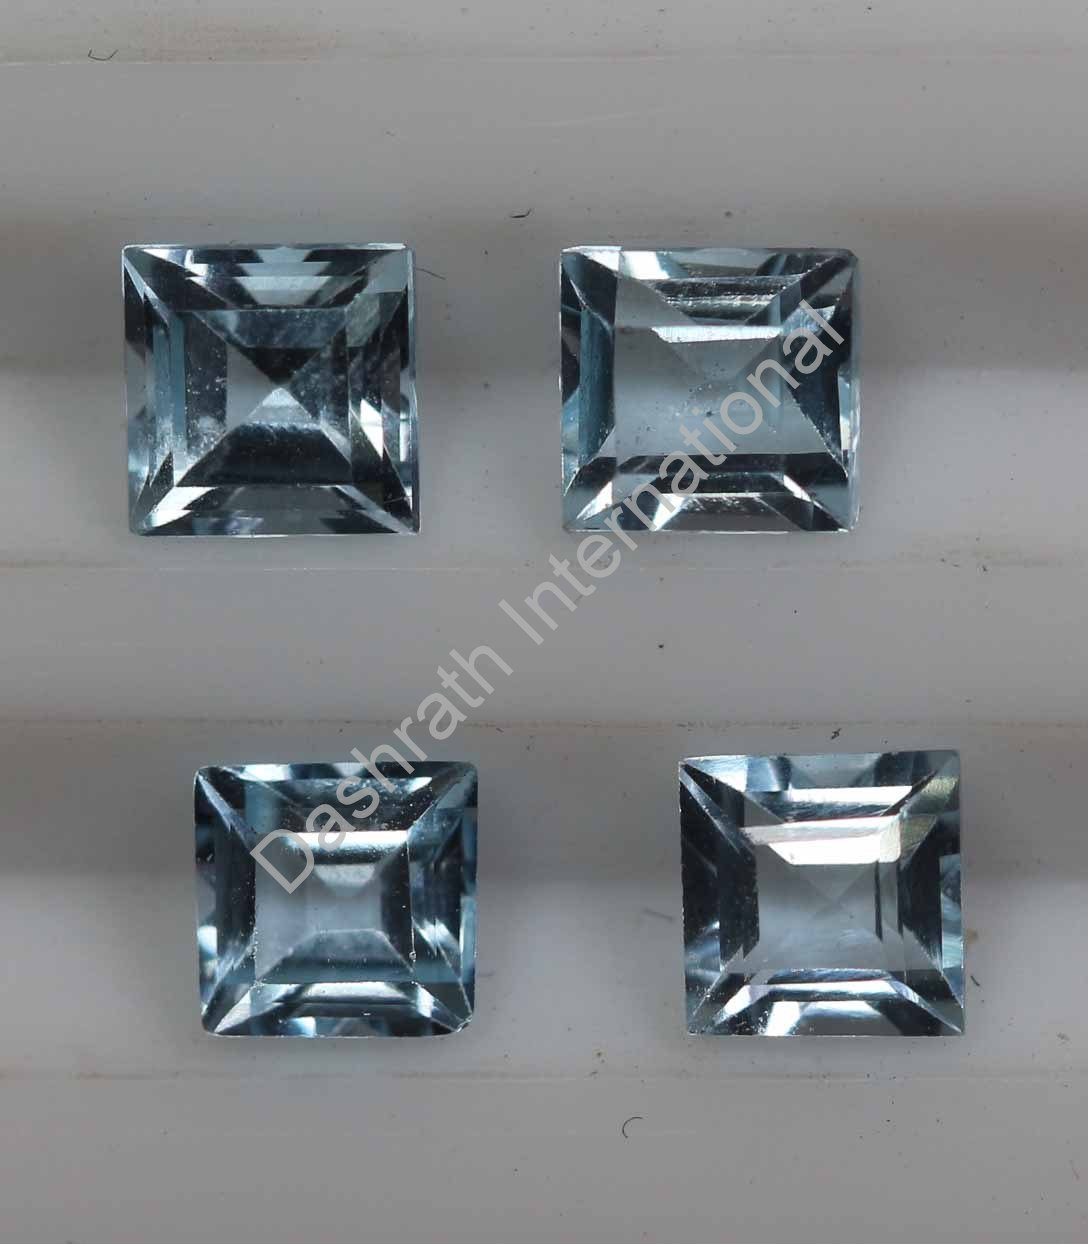 4mm  Natural Sky Blue Topaz Faceted Cut Square 100 Pieces Lot   Top Quality Loose Gemstone